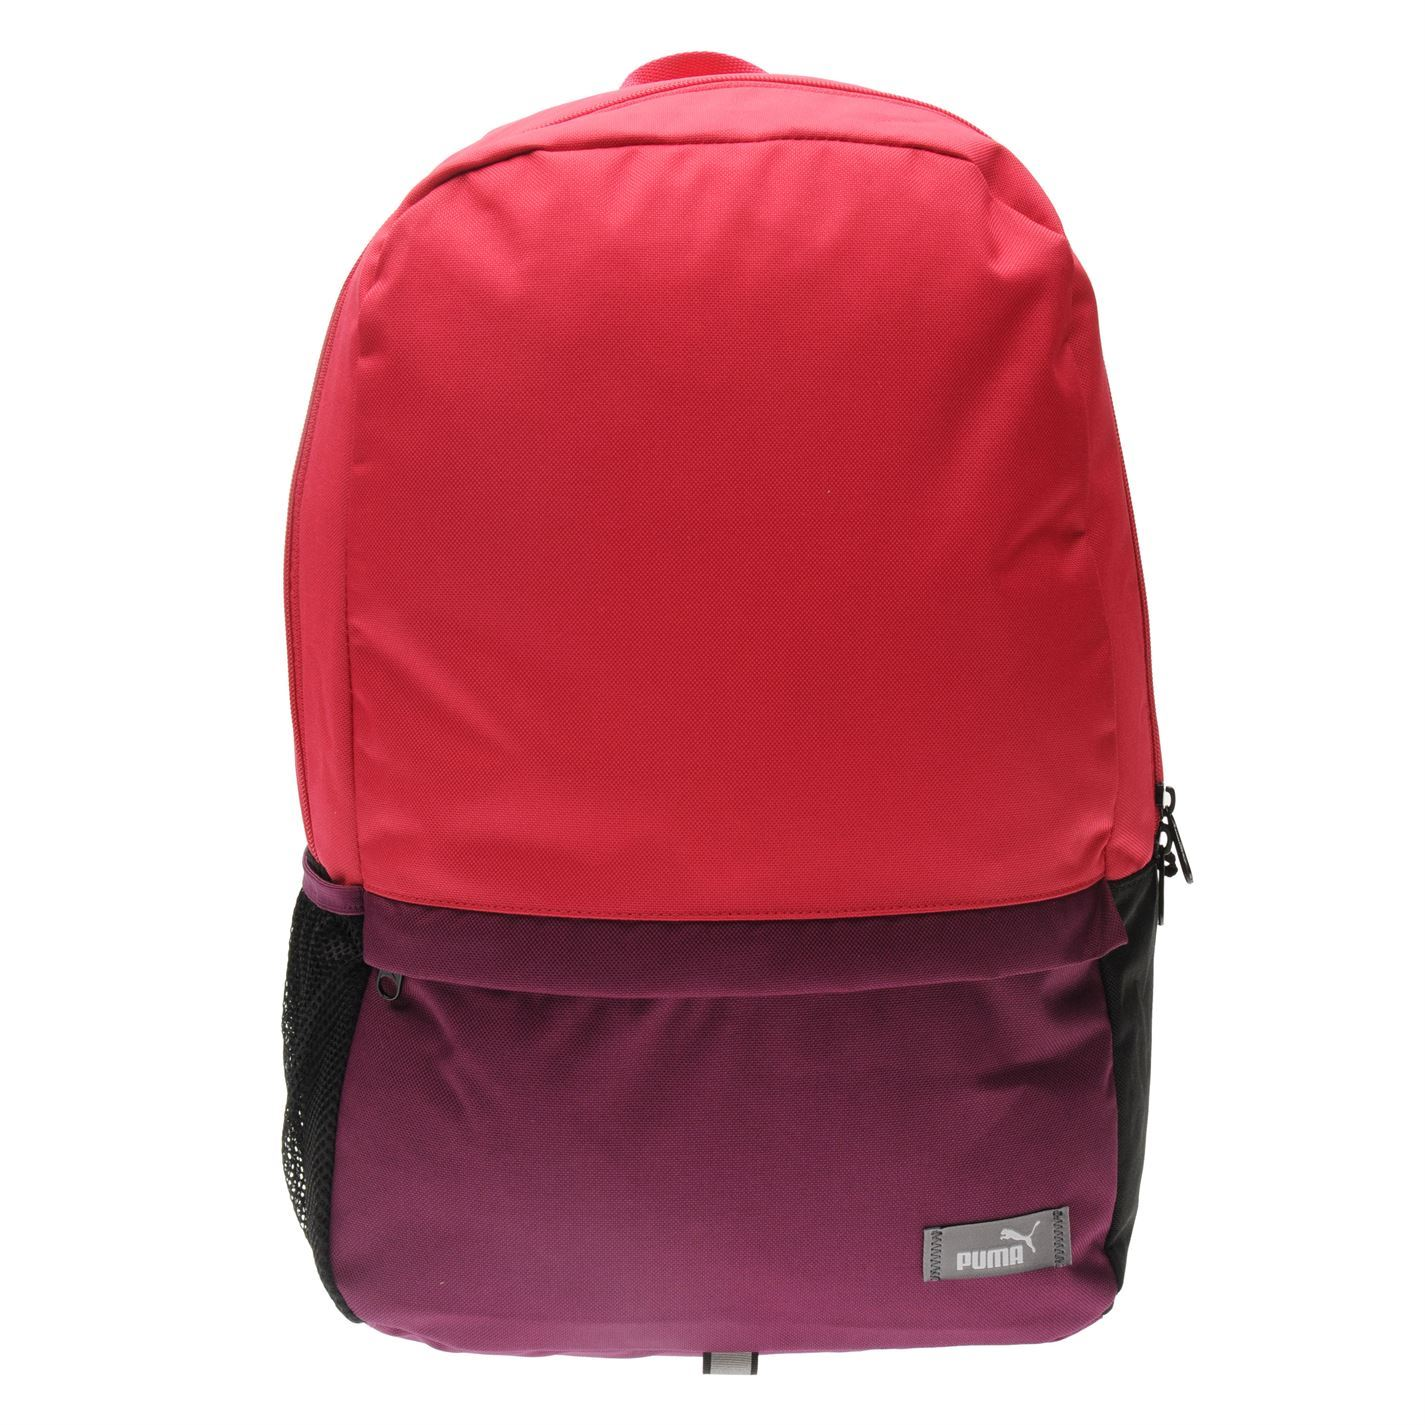 ... Puma Back To School Backpack with Pencil Case Purple School Bag Holdall  Rucksack ... e33e8965be677